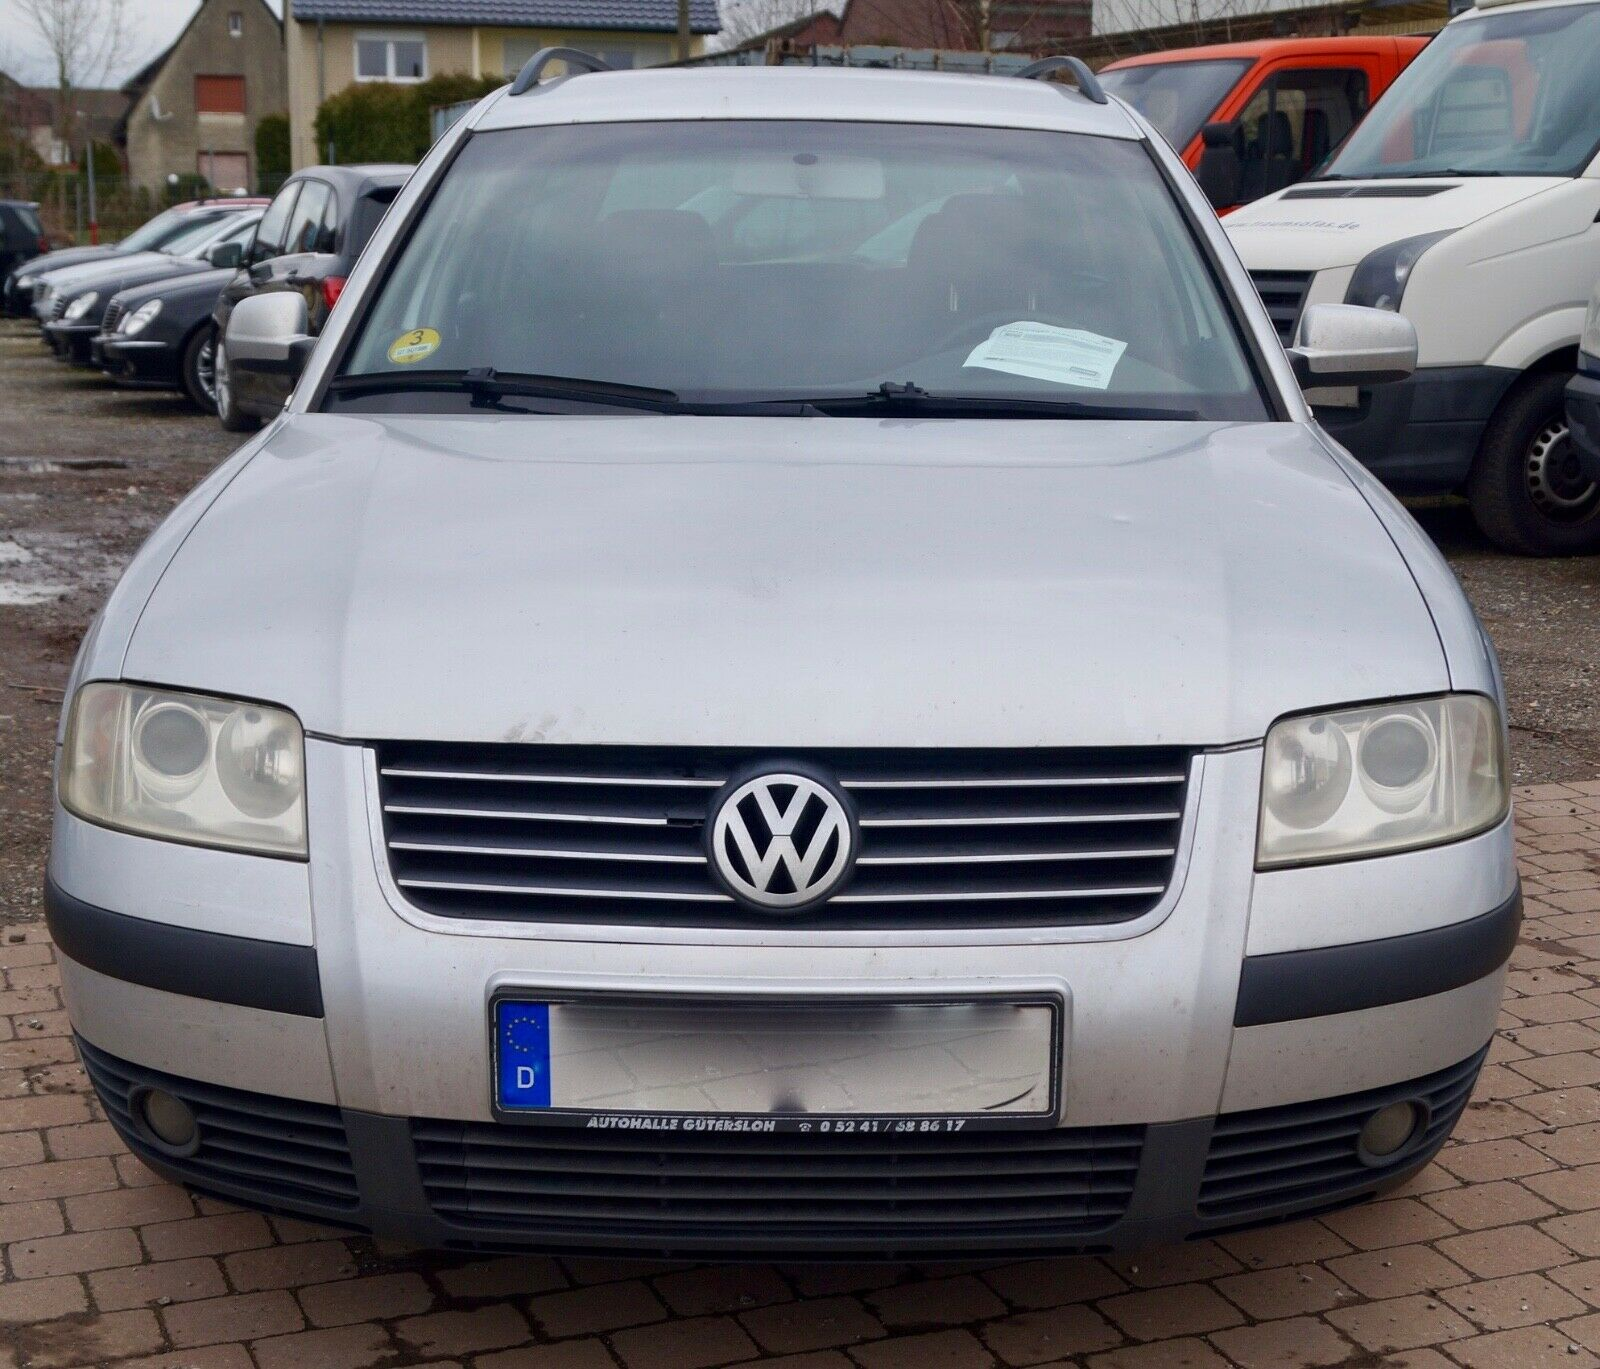 VW Passat Variant Basis